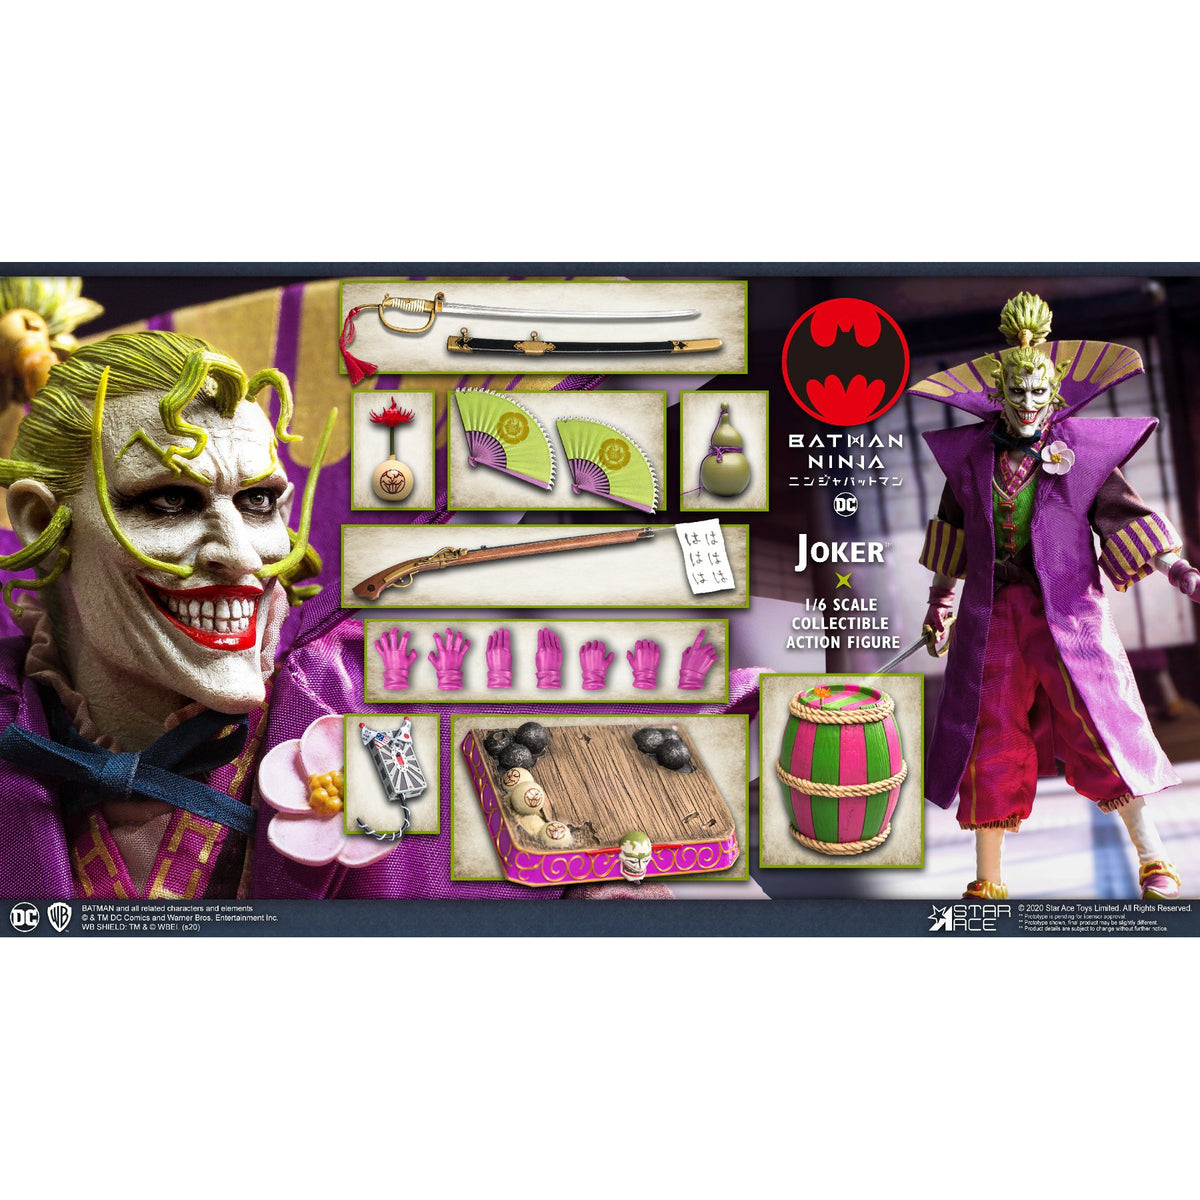 Batman Ninja Joker 1 6 Scale Deluxe Action Figure March 2021 Cool Collectibles And Unique Gift Items